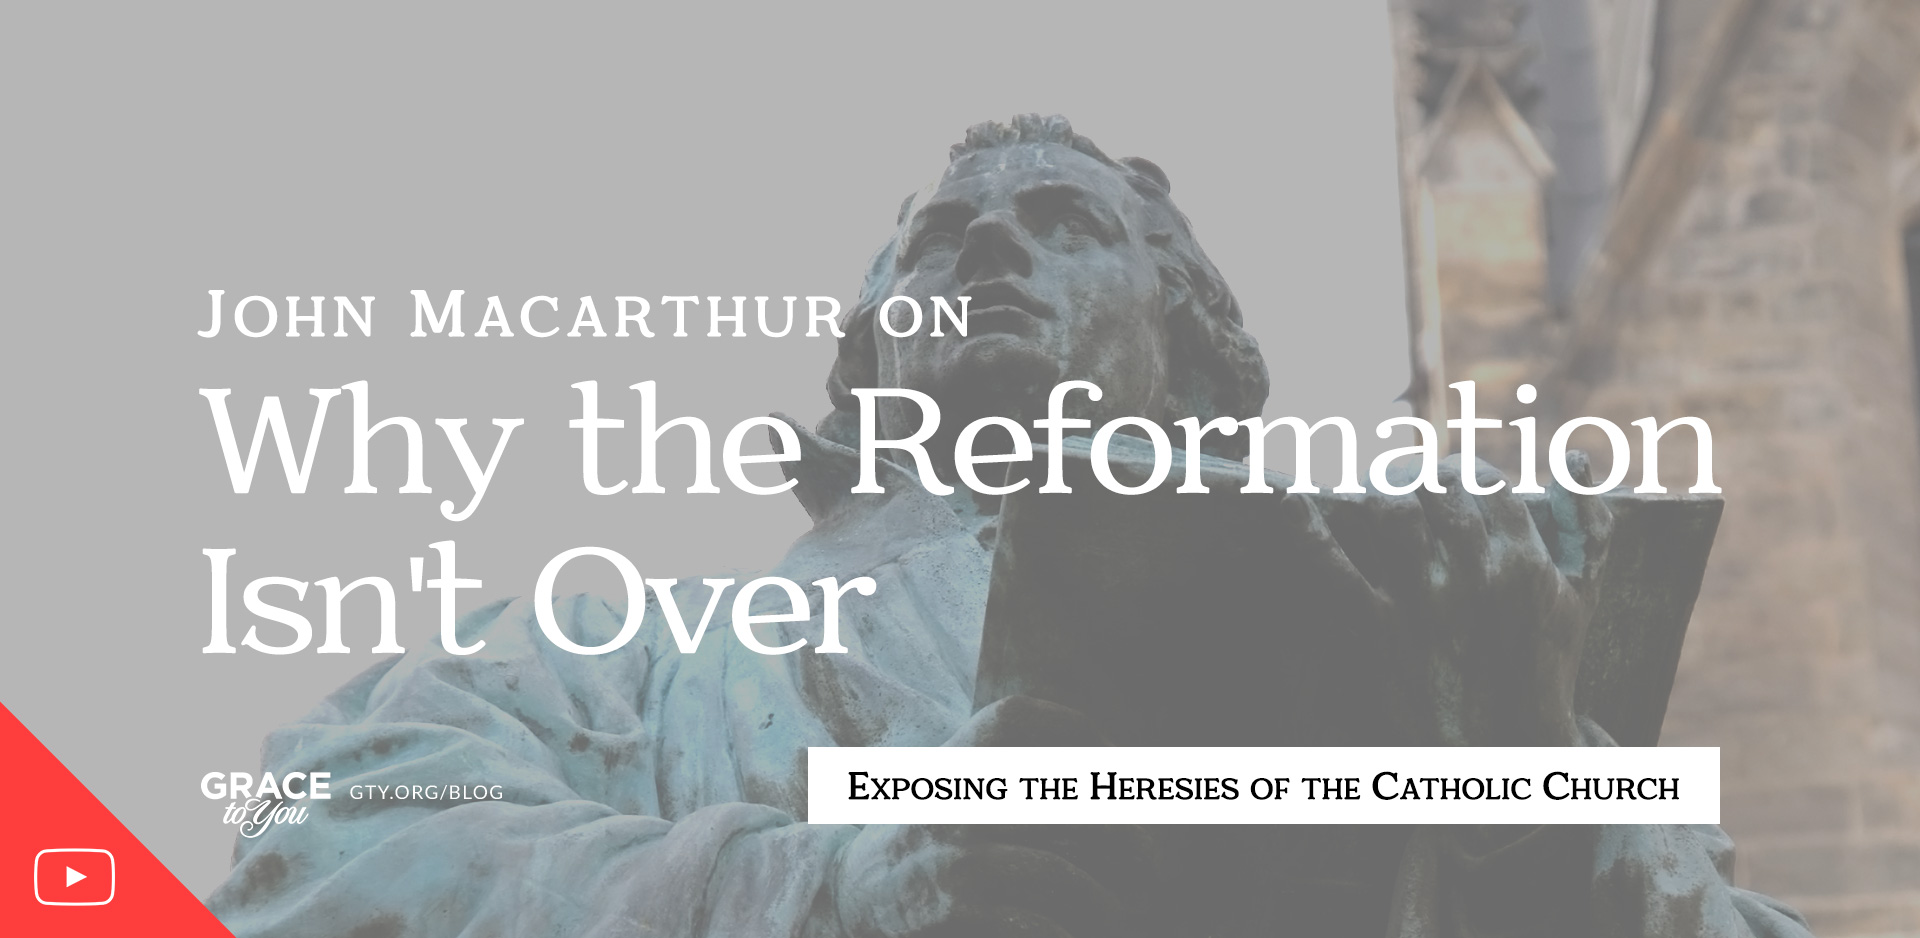 John MacArthur on Why the Reformation Isn't Over